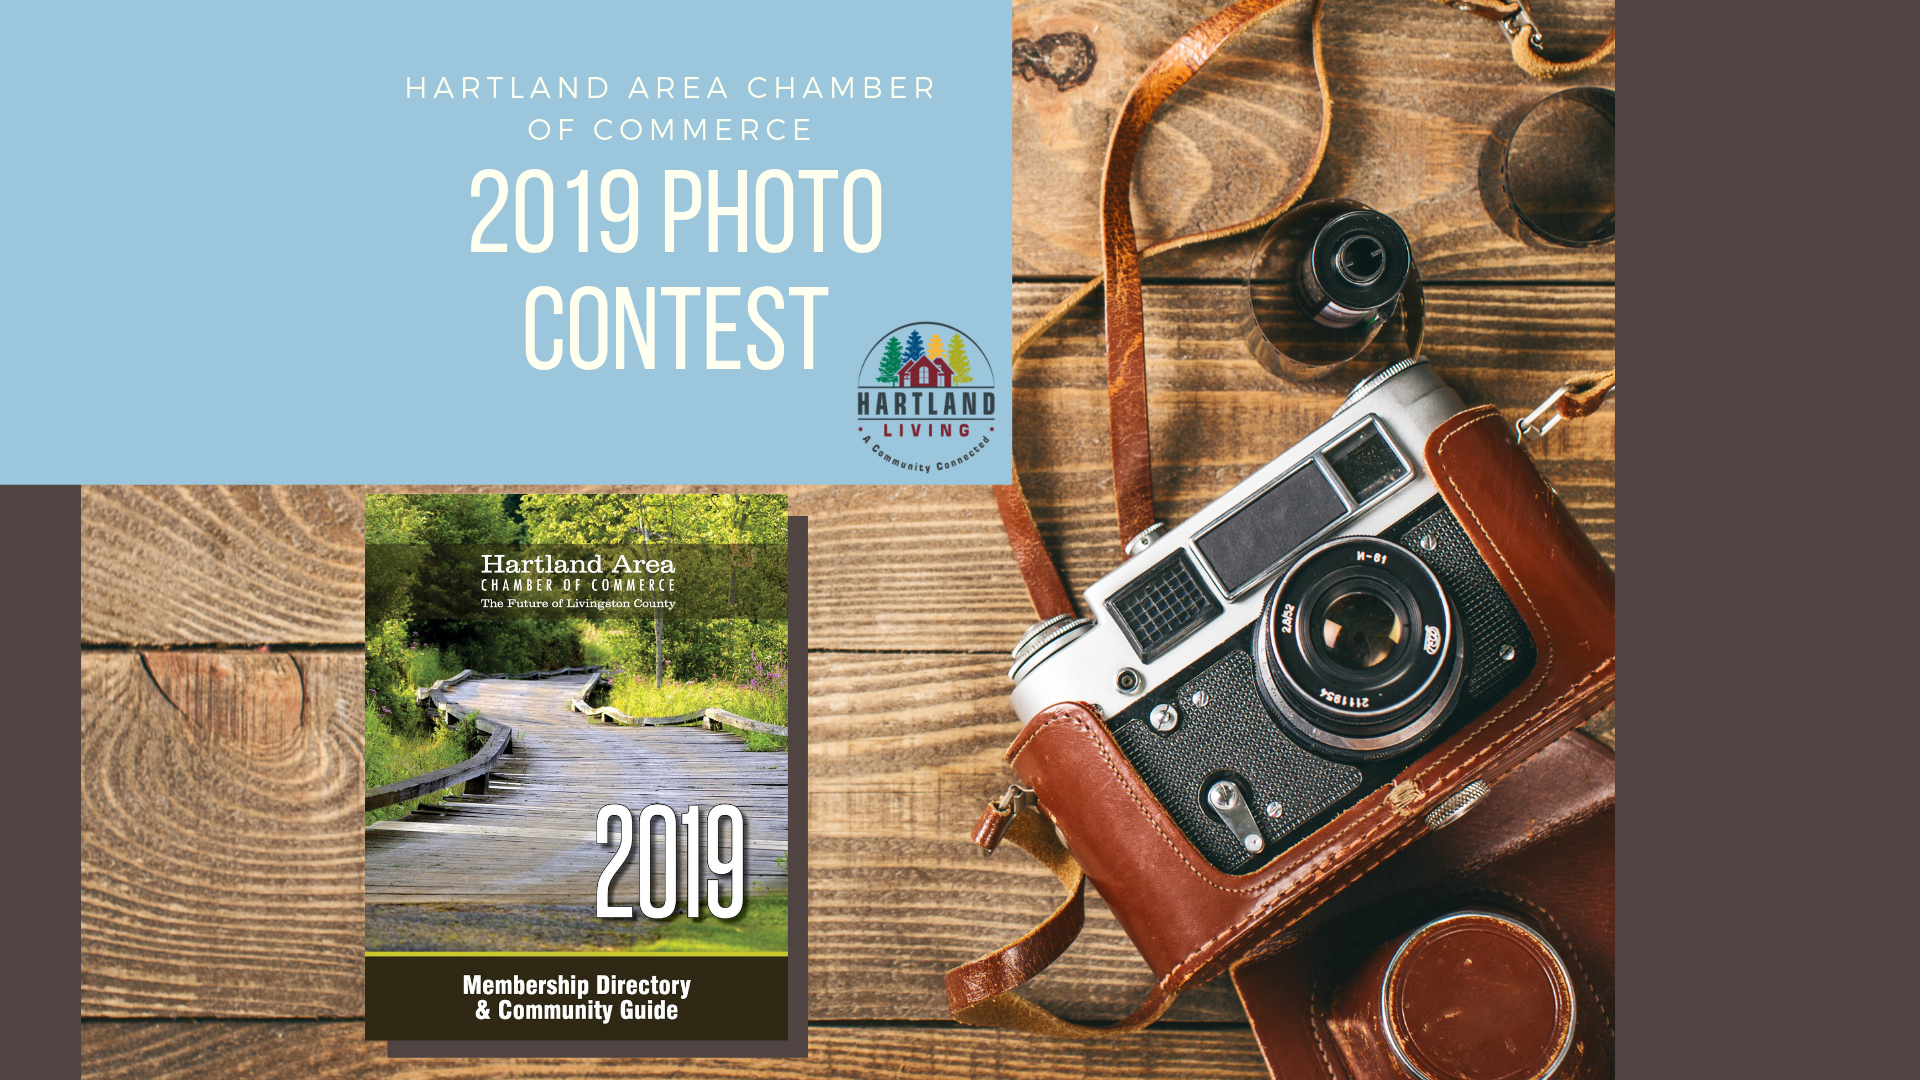 Hartland Area Chamber of Commerce Photo Contest